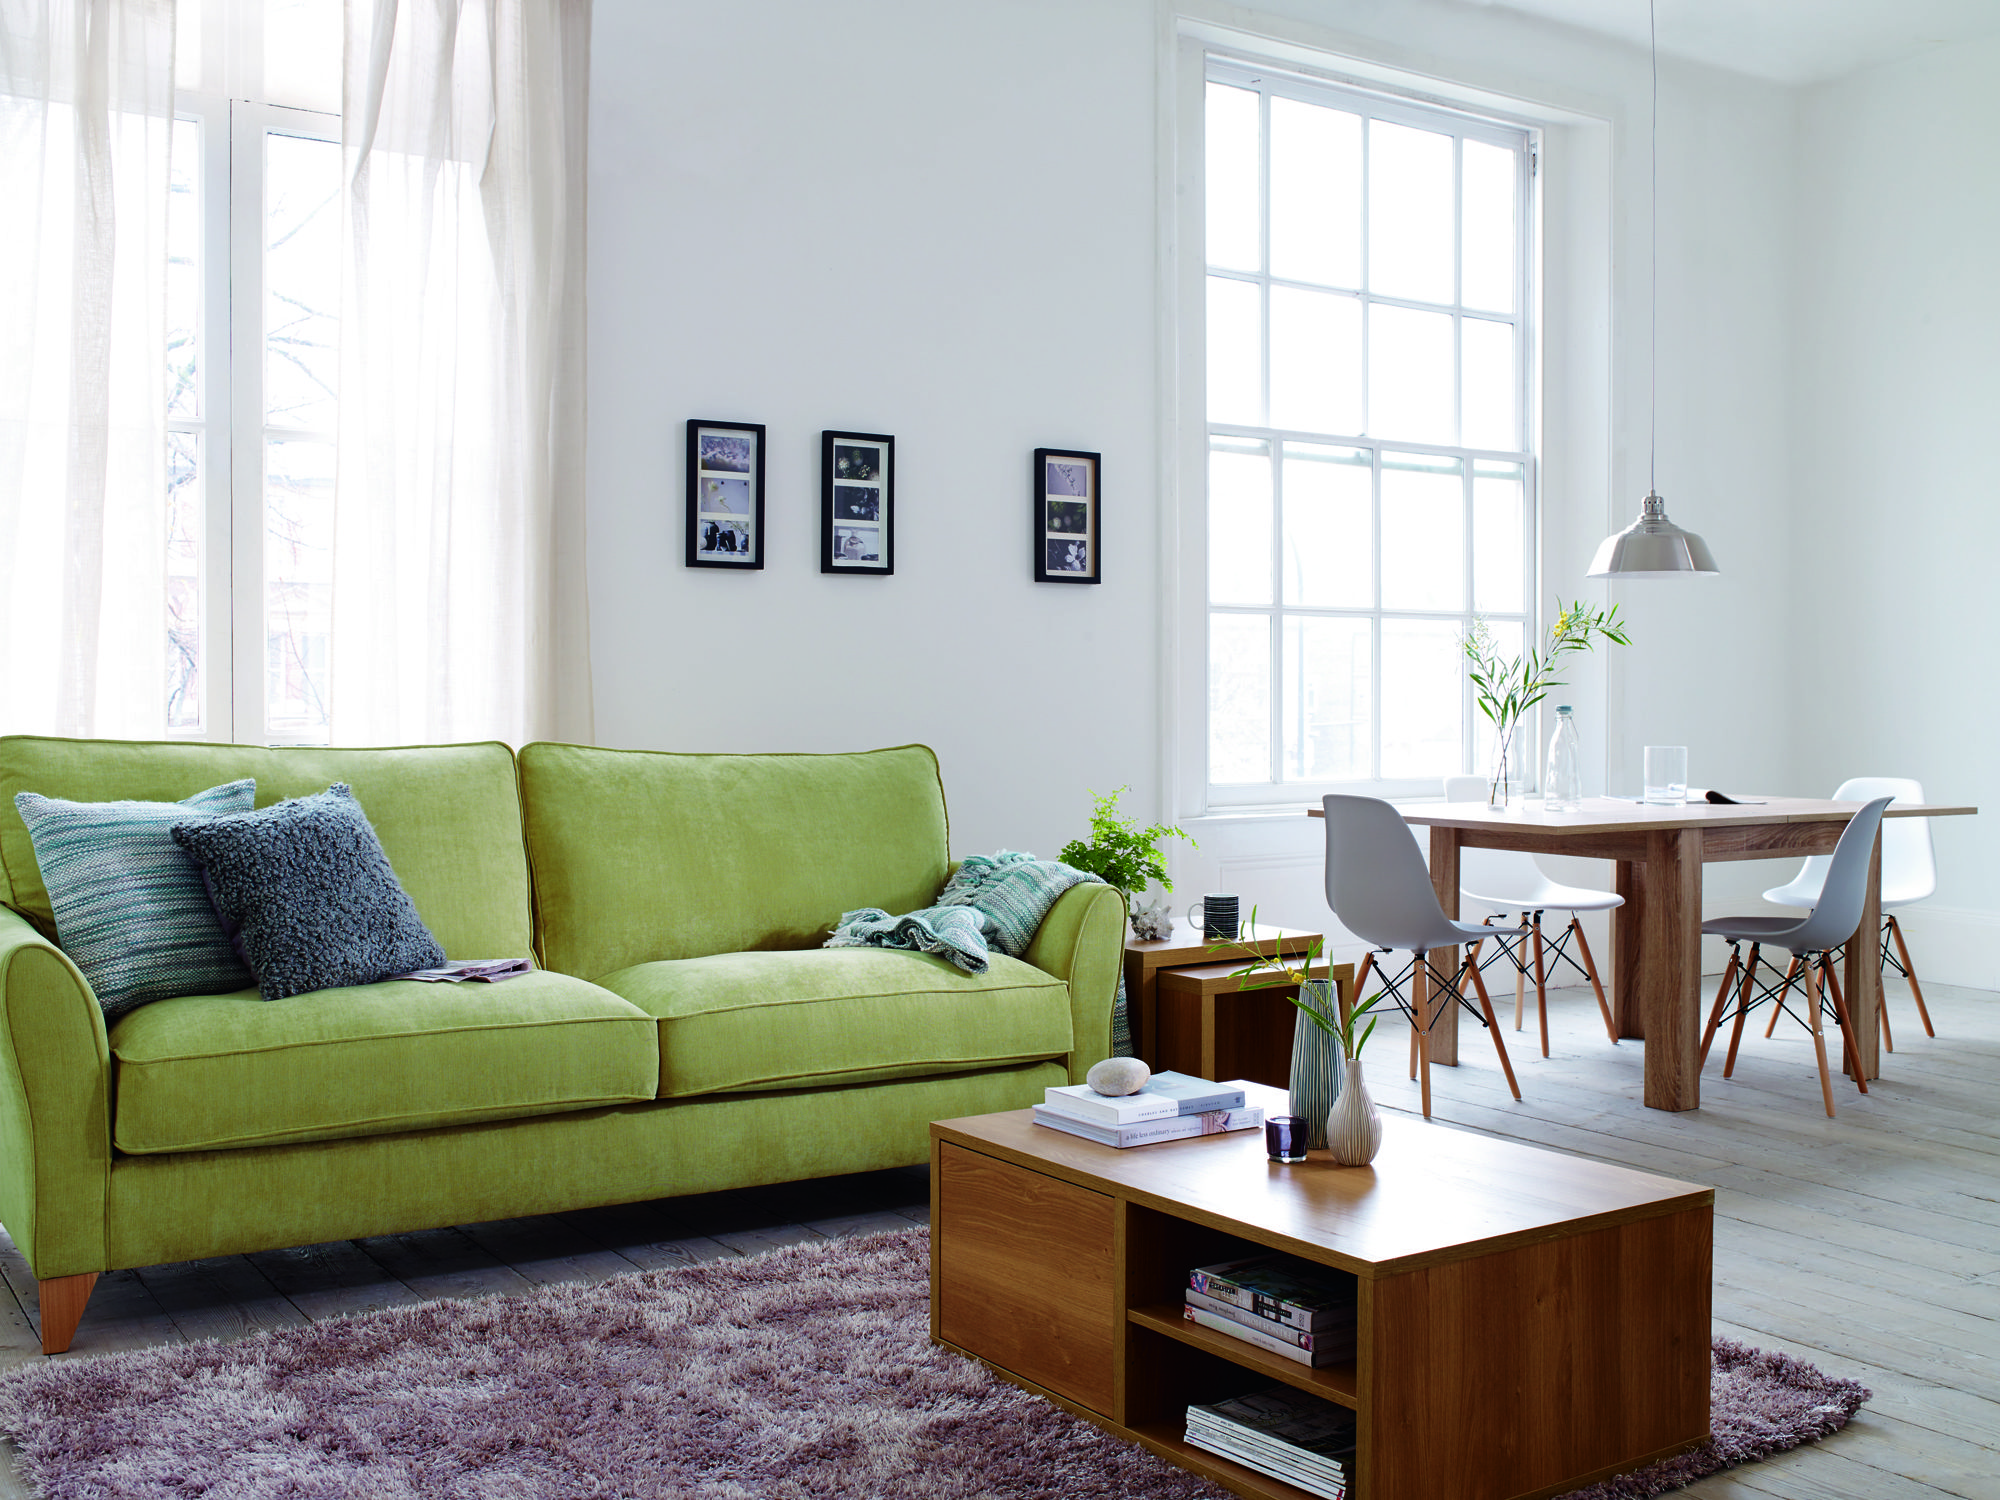 Lime Green Sofa To Bring A Bright Colour To A Basic Decorated House, Be  Inspired. #home #lounge #sofa #cushions